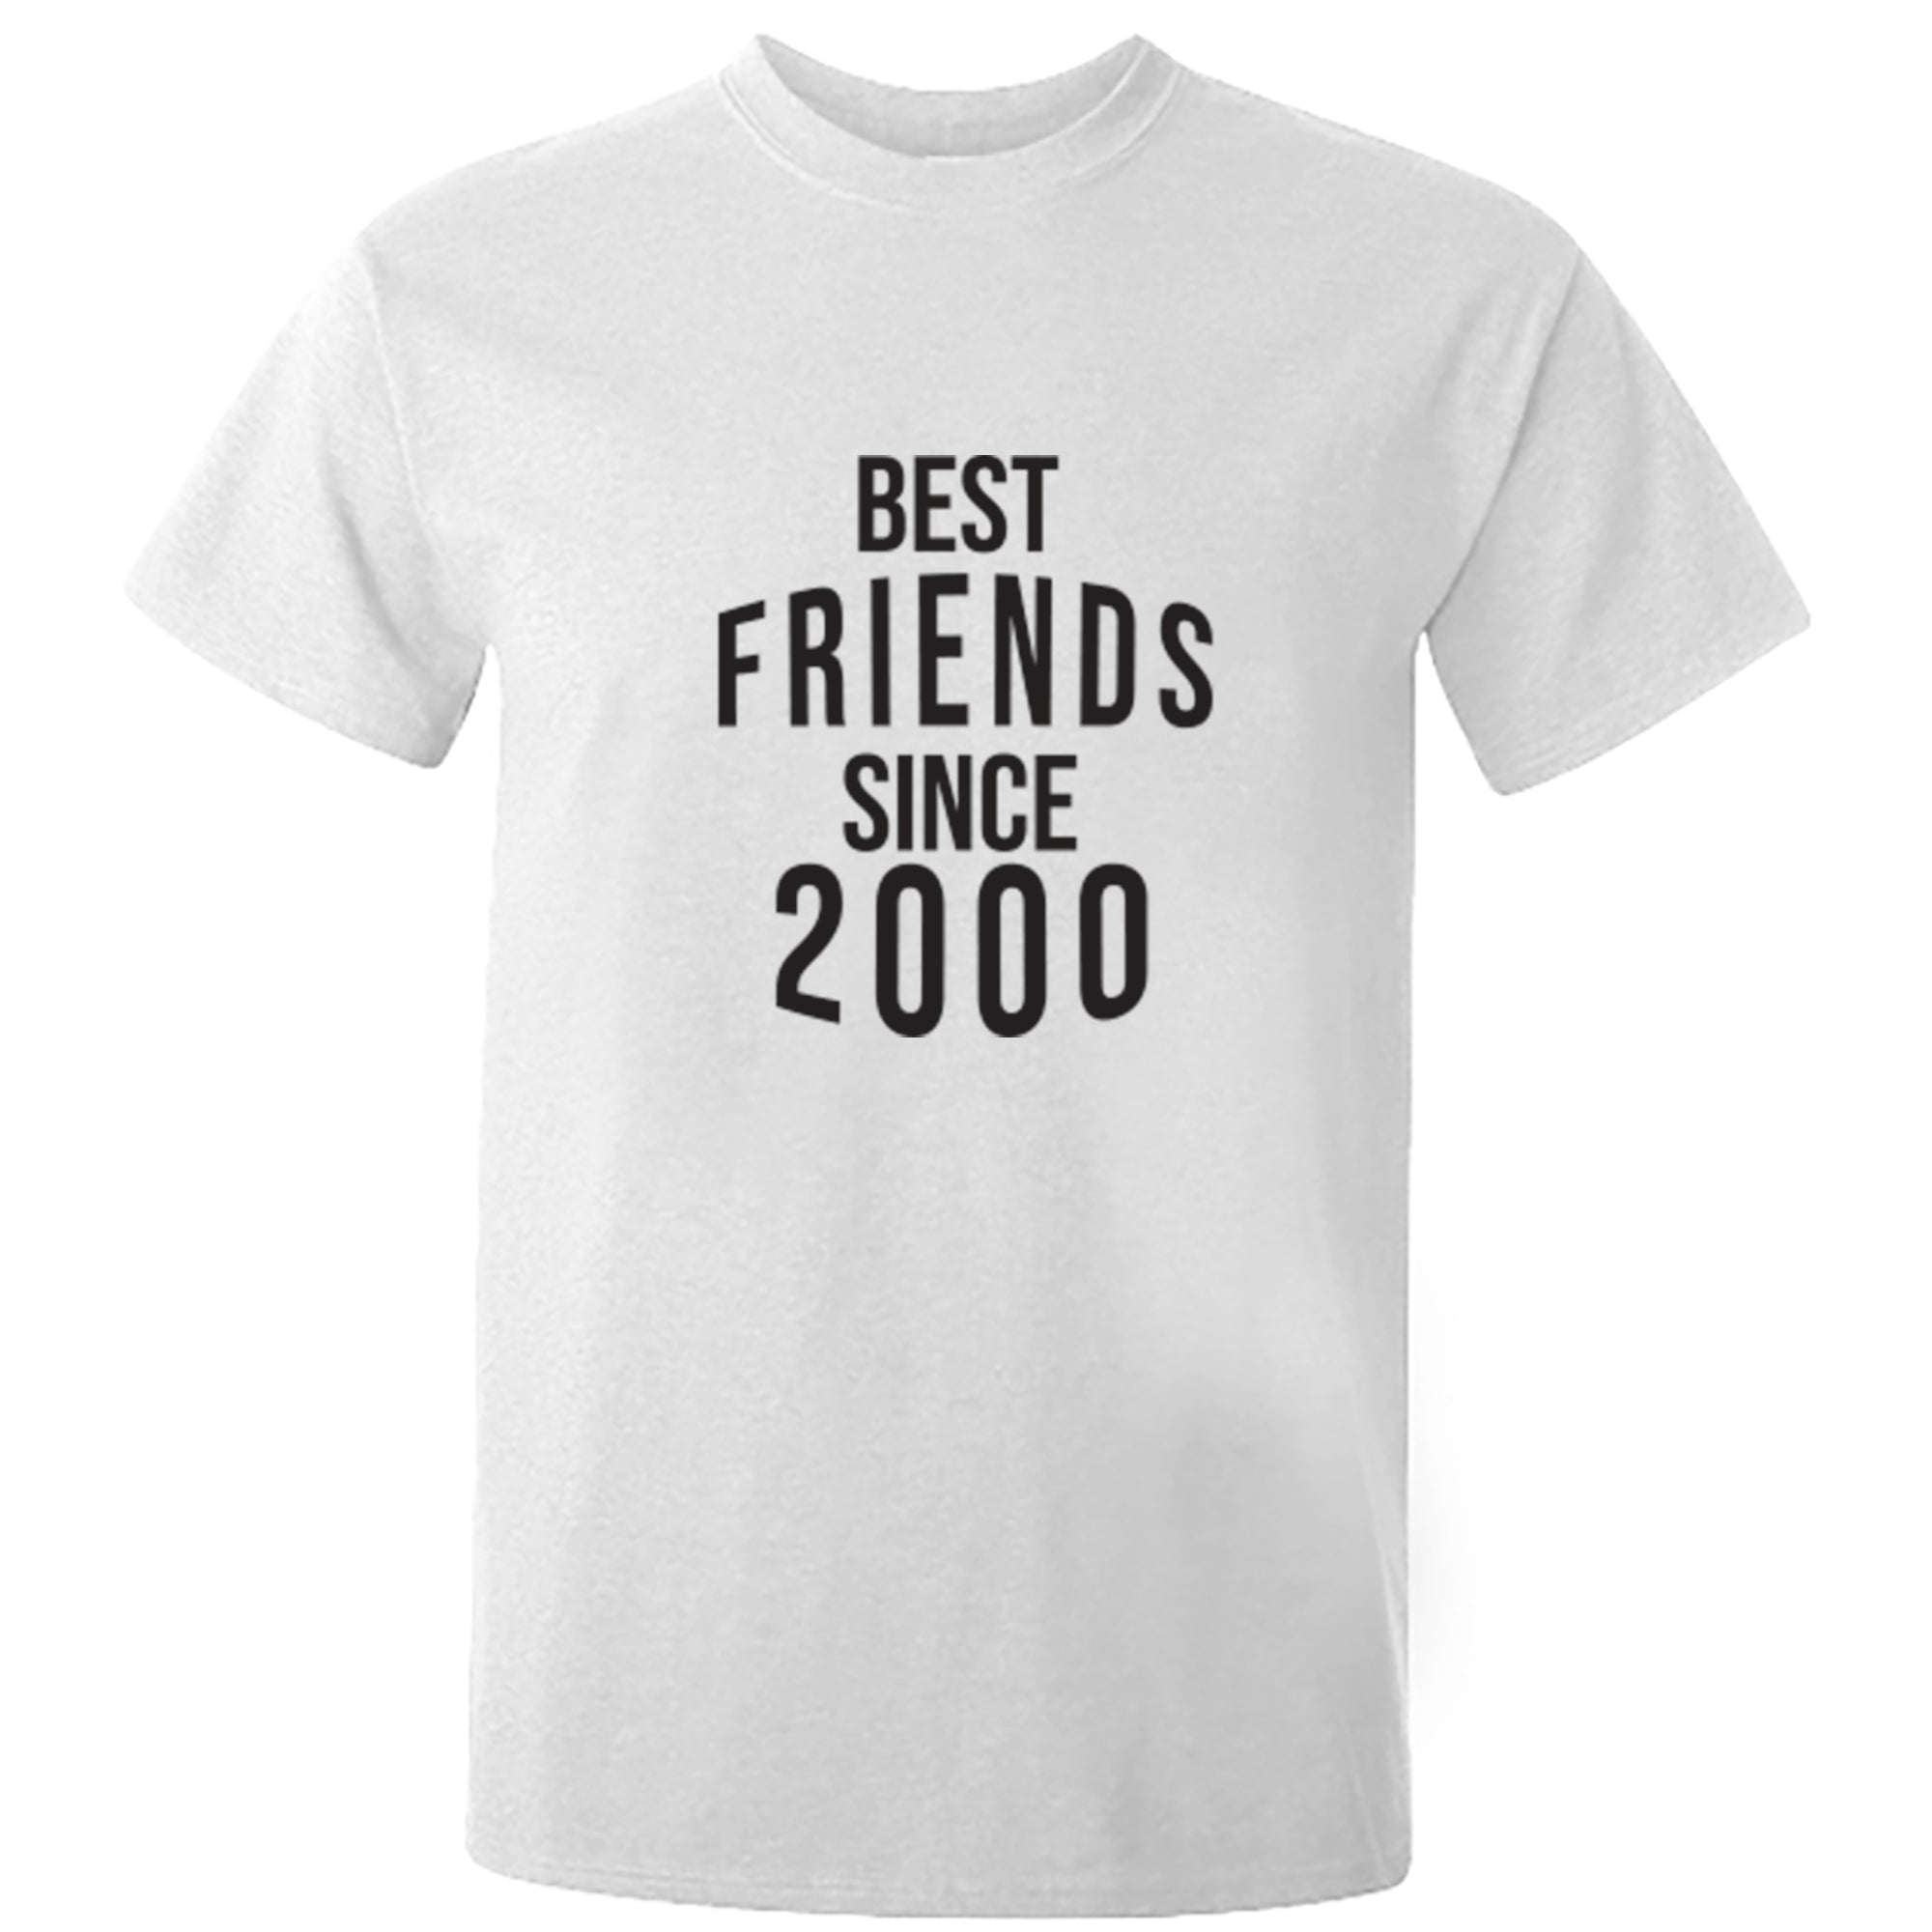 Best Friends Since 2000 Unisex Fit T-Shirt S0579 - Illustrated Identity Ltd.